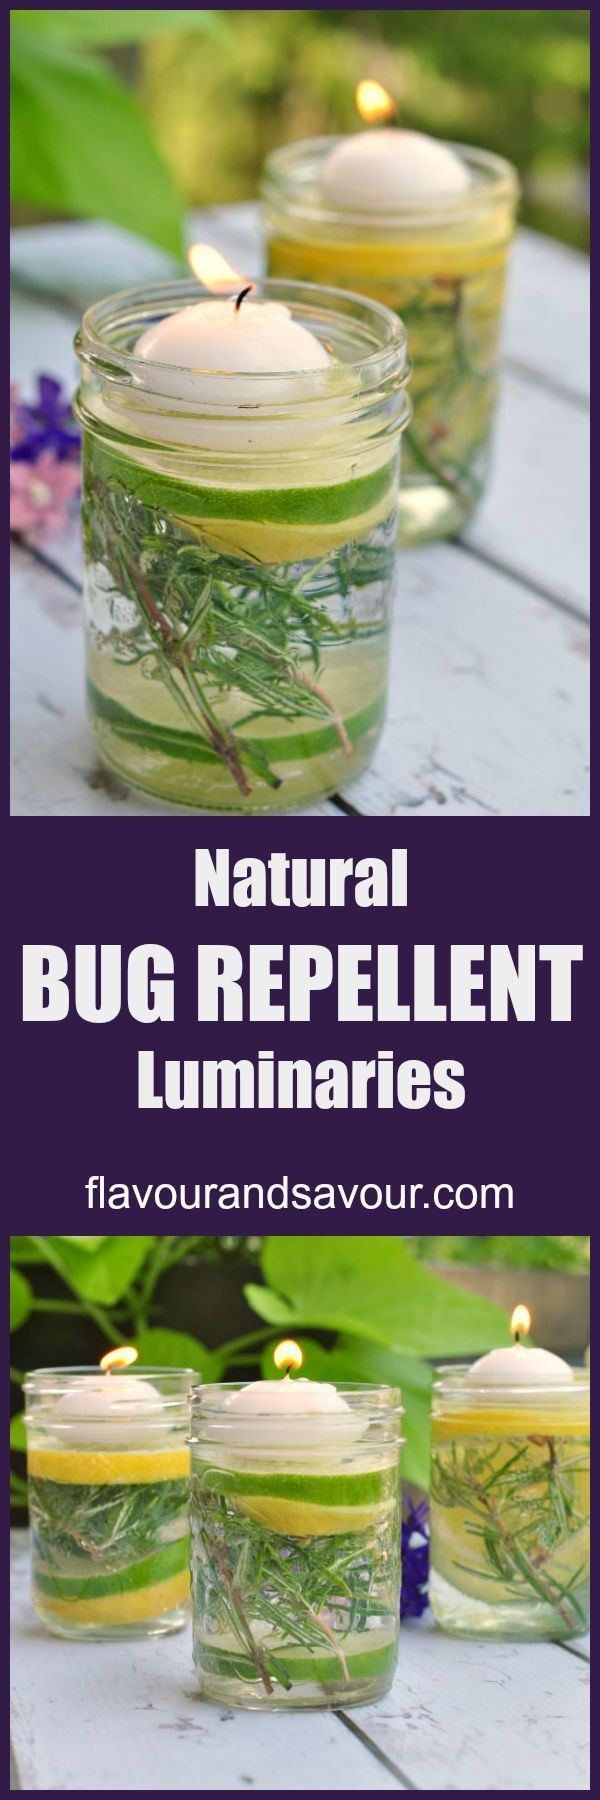 Natural Insect Repellent DIY Luminaries. using essential oils |www.flavourandsavour.com